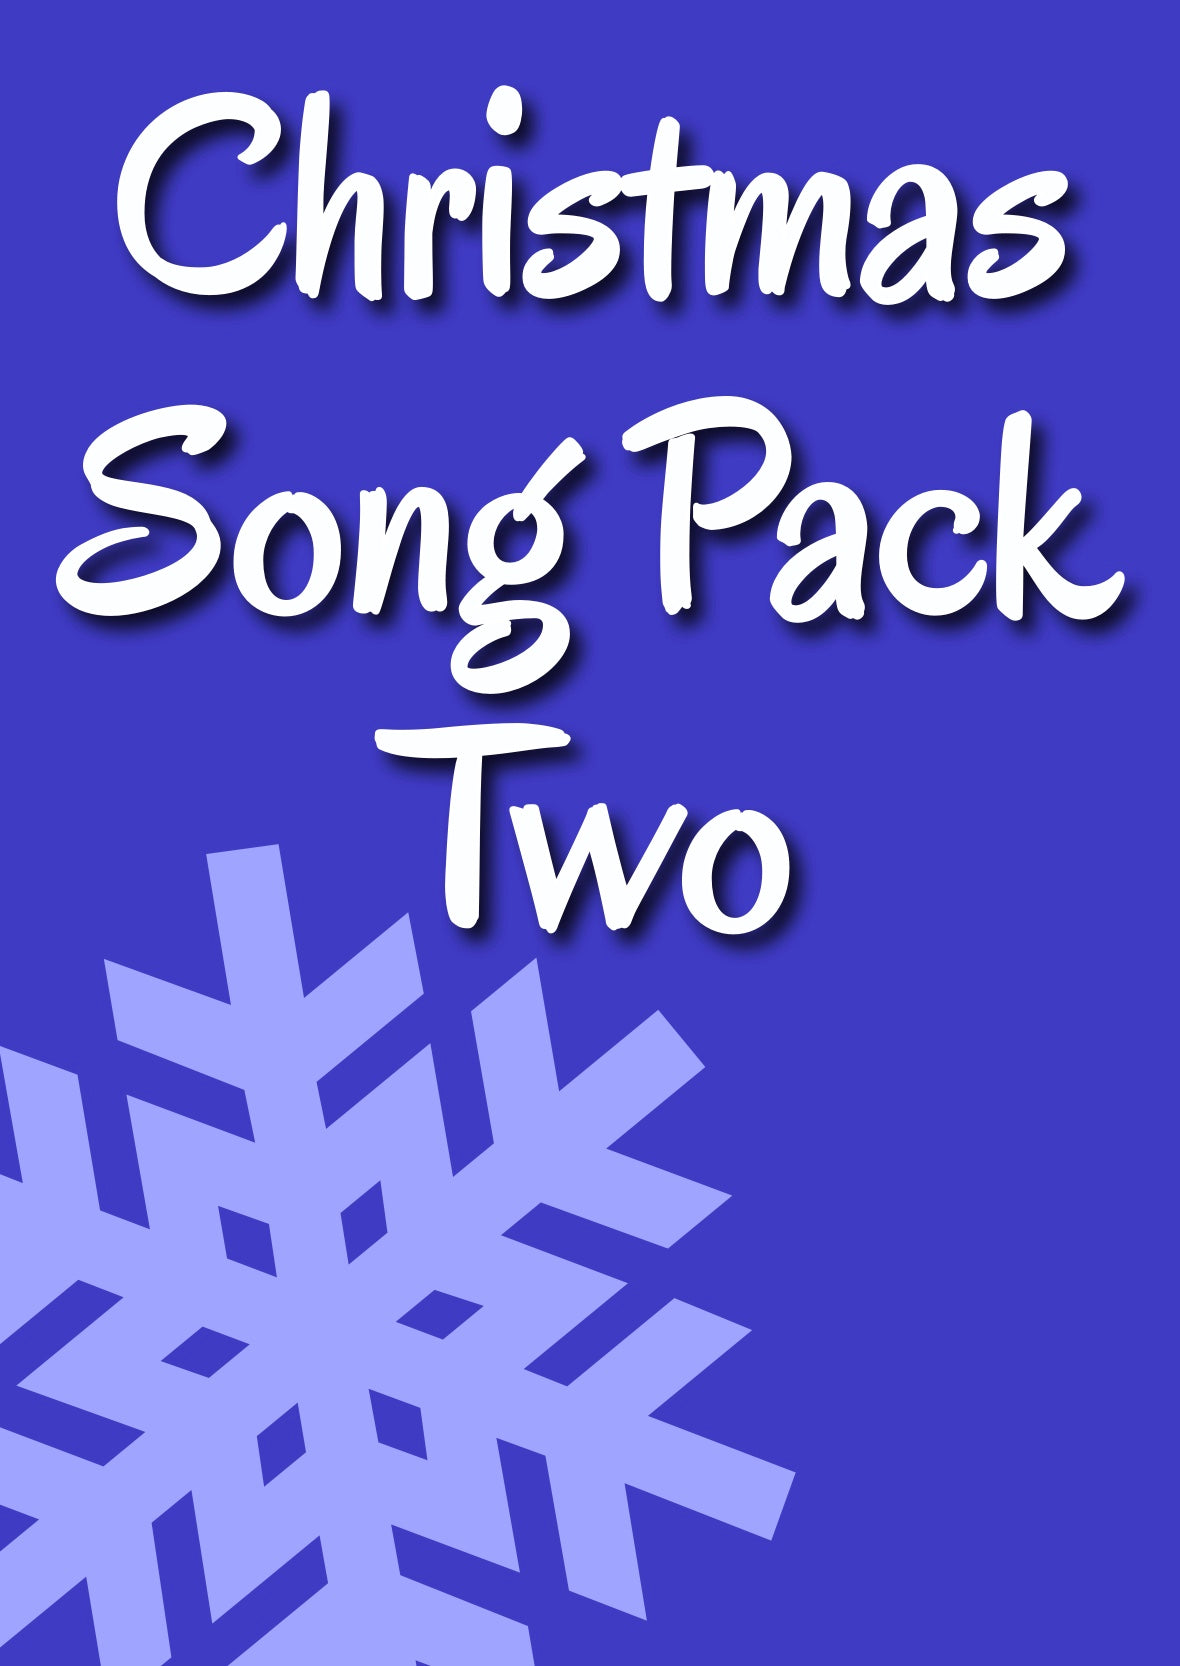 CHRISTMAS SONG PACK FOR SCHOOLS